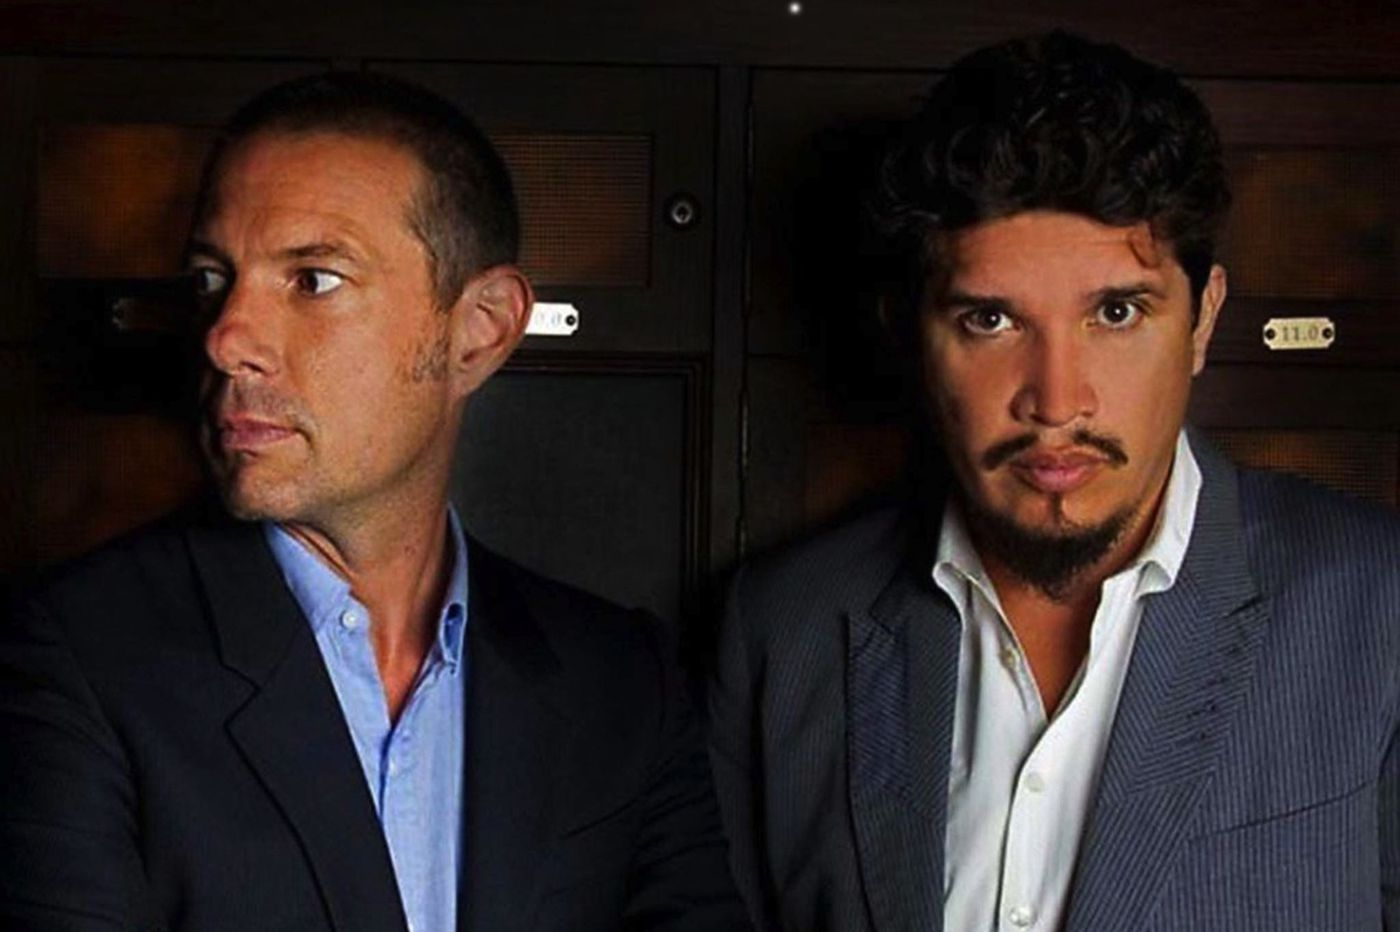 Thievery Corporation brings a stew of dance musics to the Fillmore